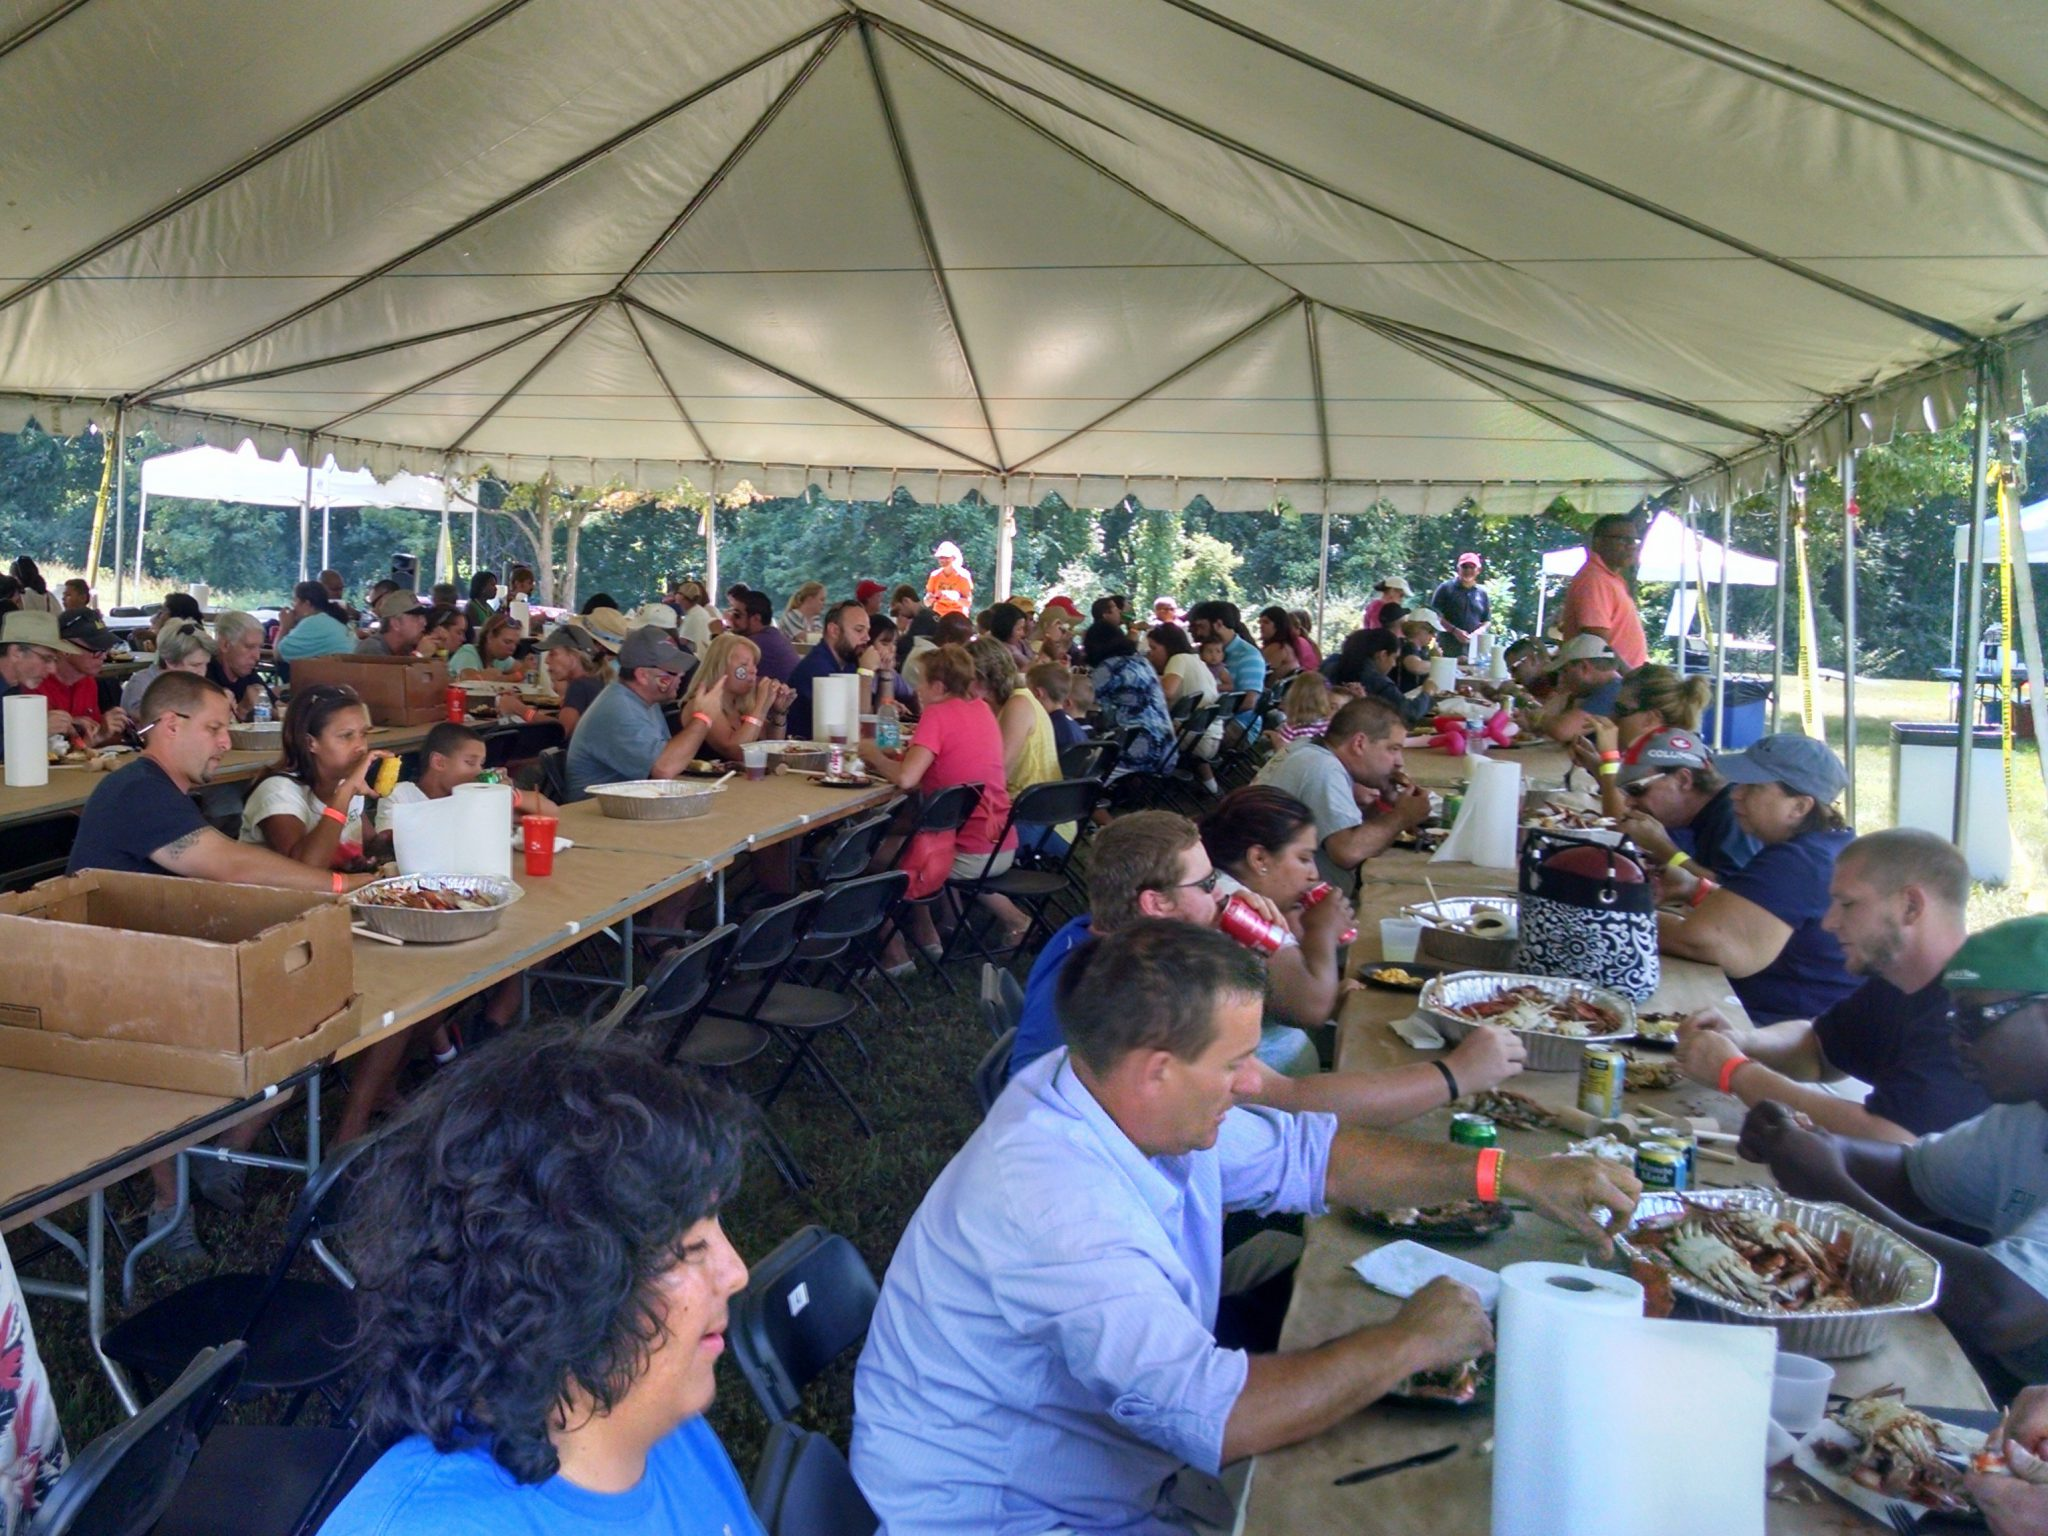 Company Picnic Venues- Corporate Catering in Rockville MD and Surrounding Maryland Areas